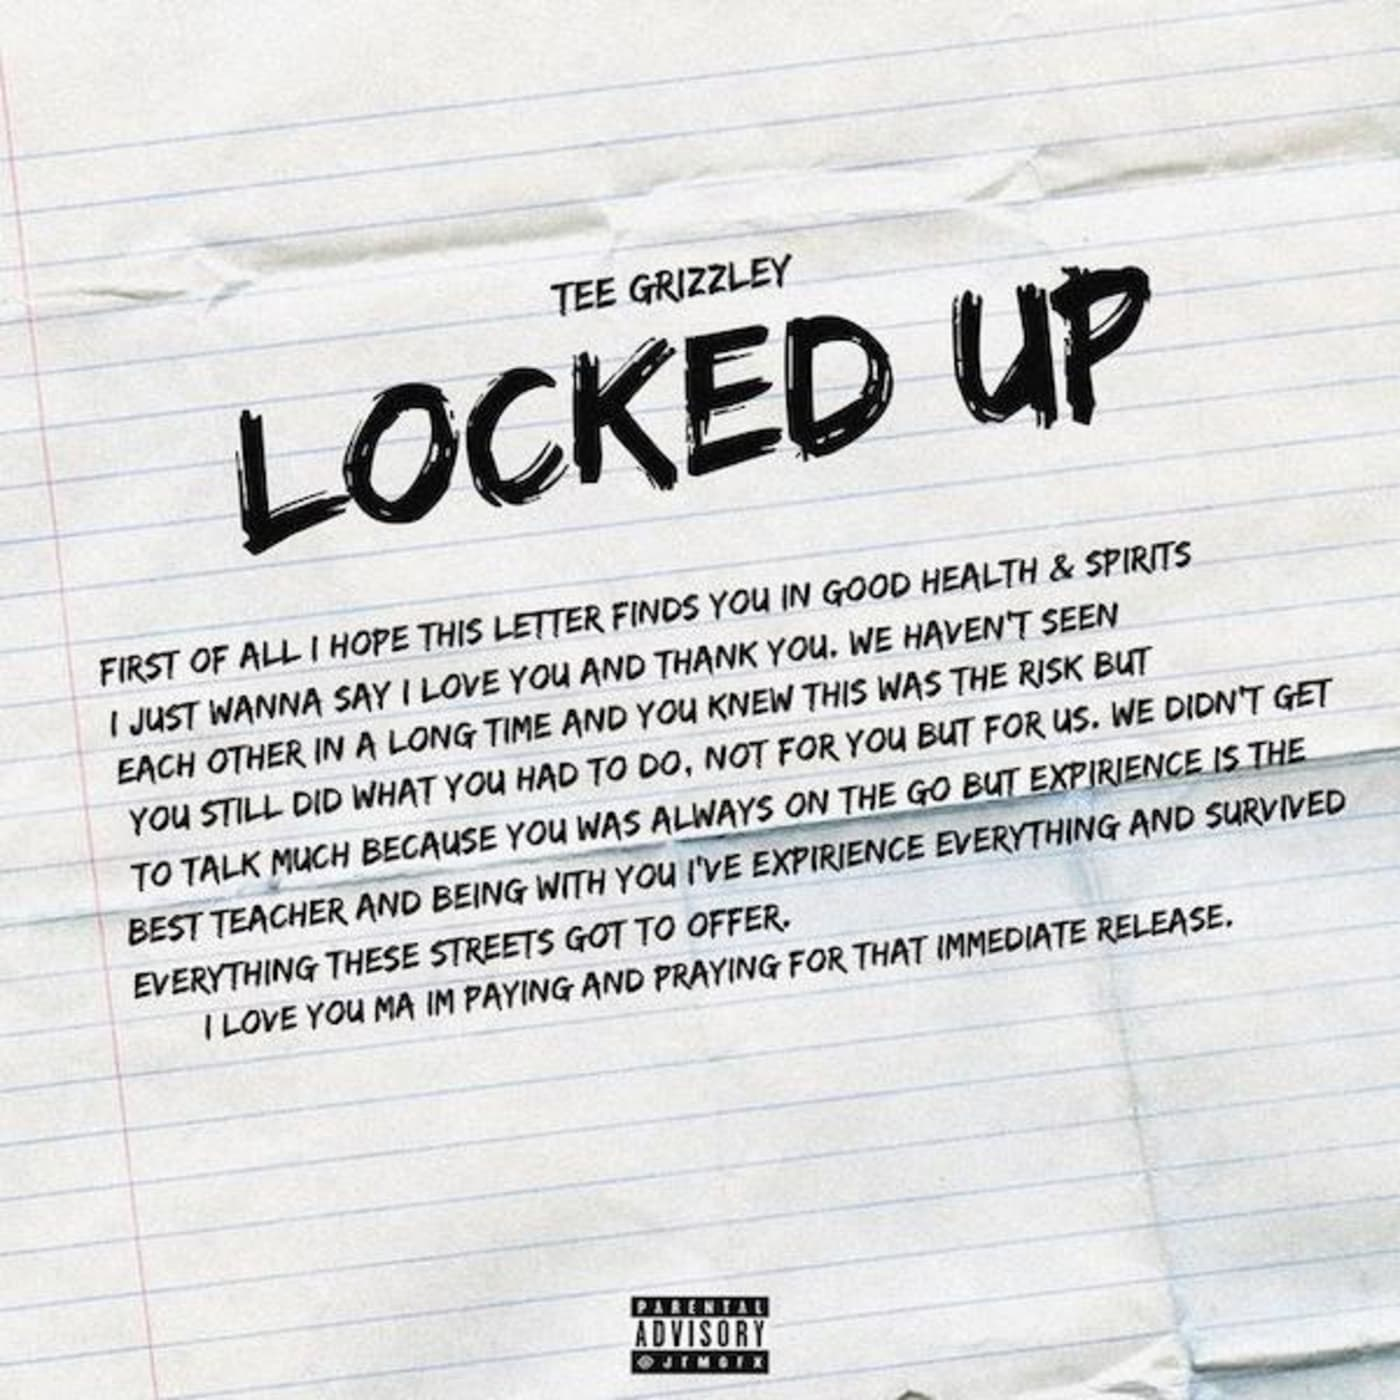 """Tee Grizzley """"Locked Up"""""""